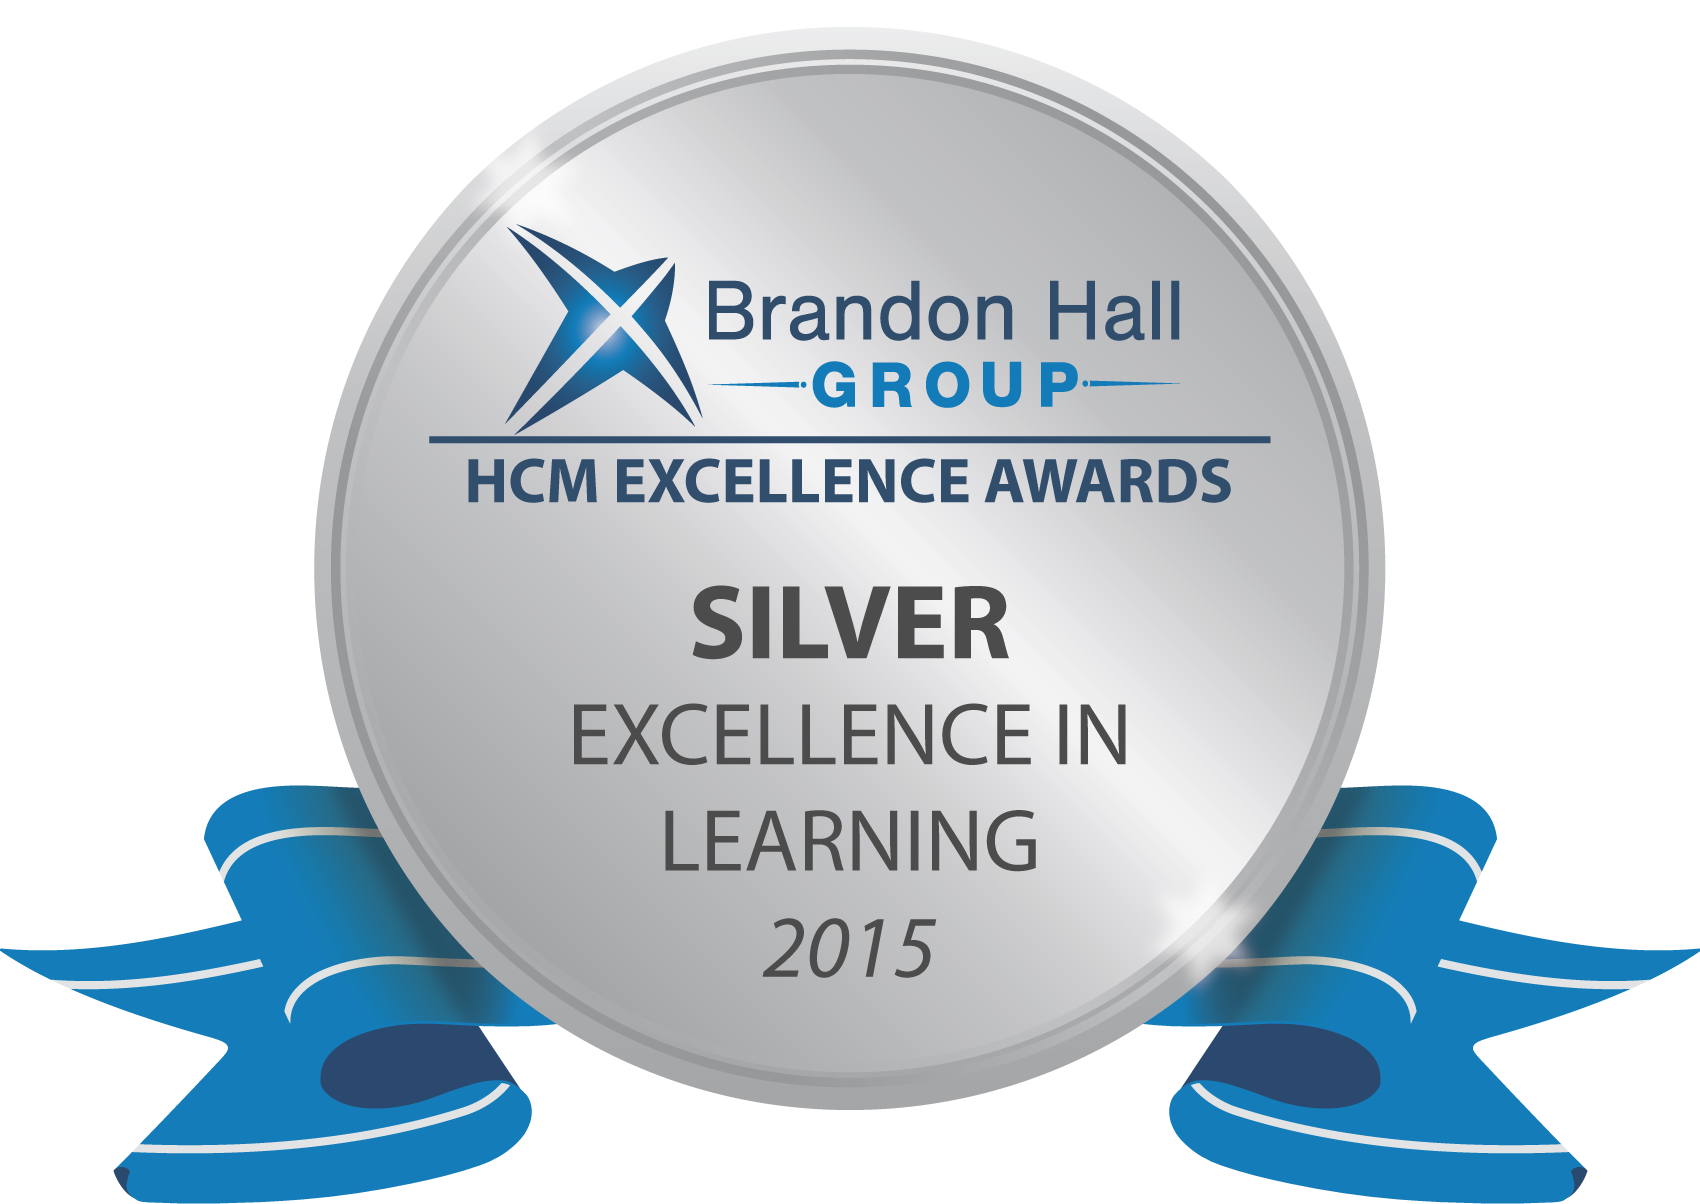 Silver-Learning-Award-2015